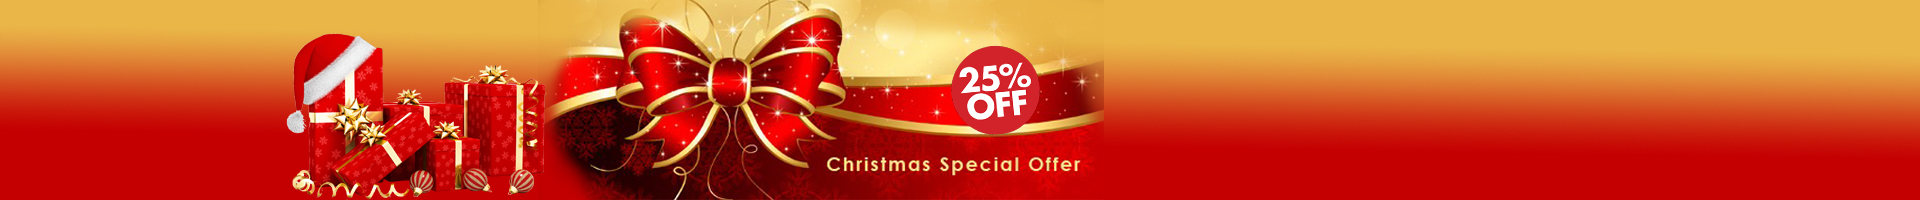 Christmas Special Offers 25% OFF